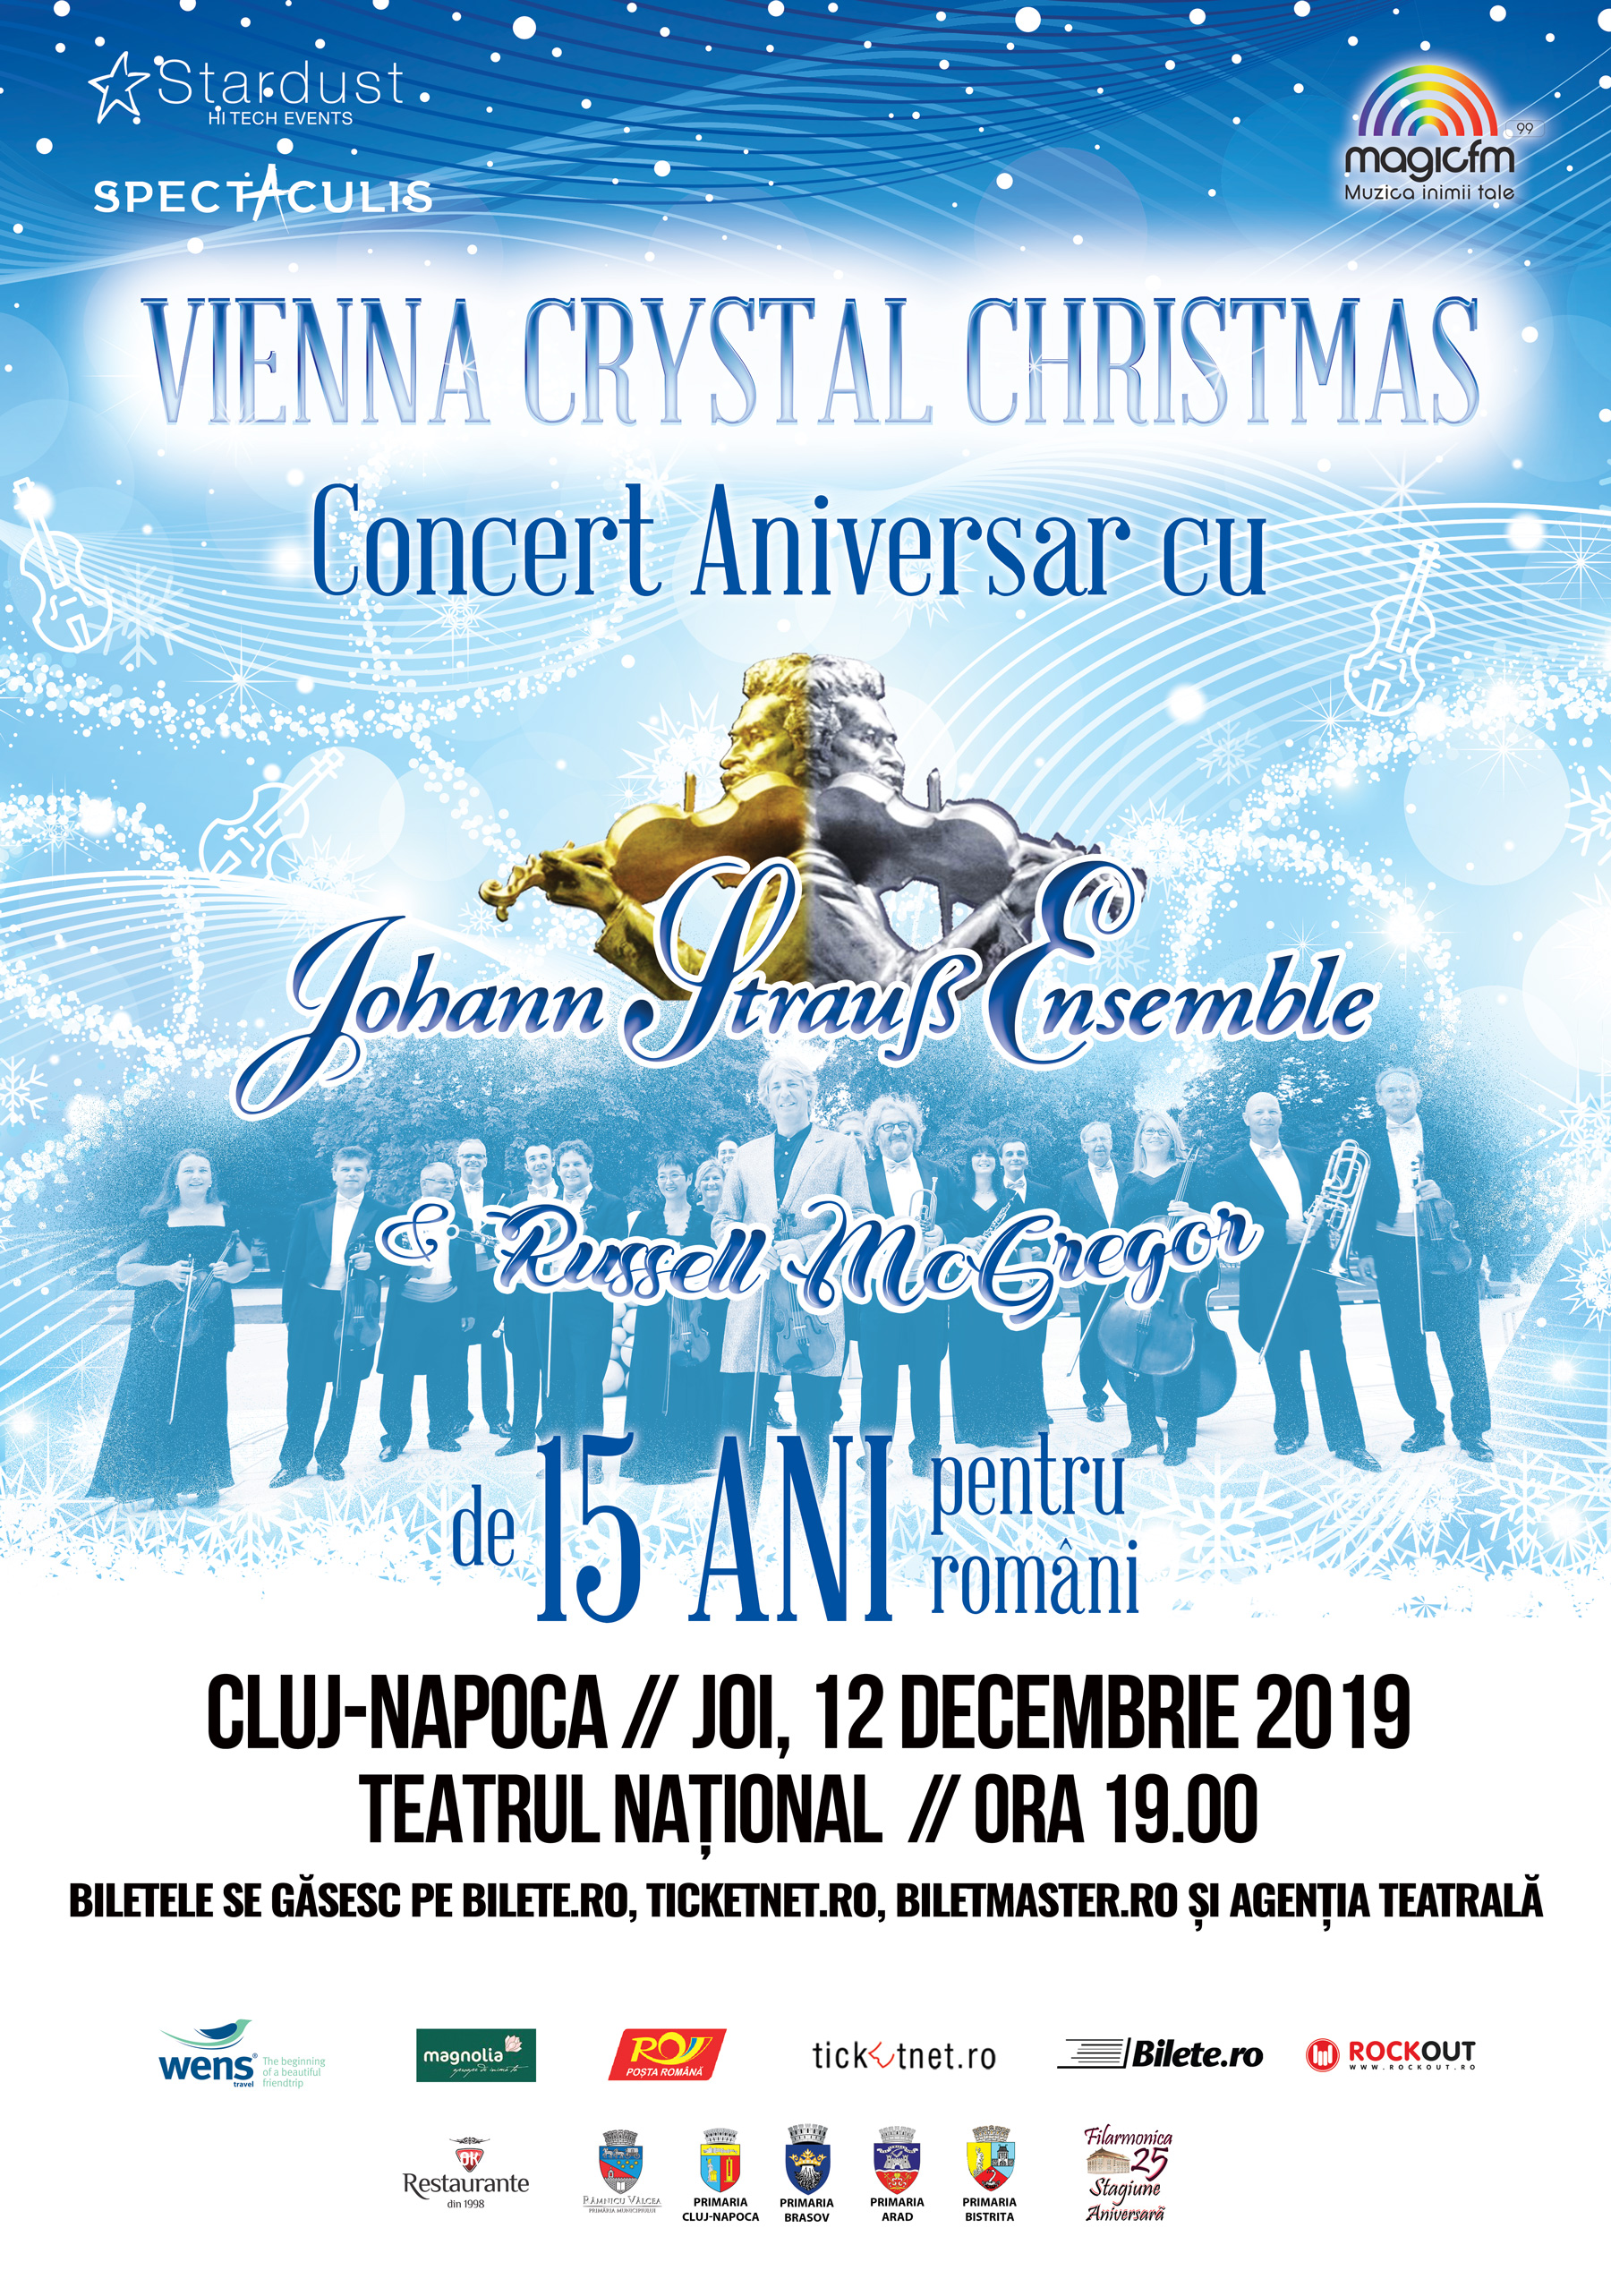 Johann Strauss Ensemble - Vienna Crystal Christmas - CLUJ